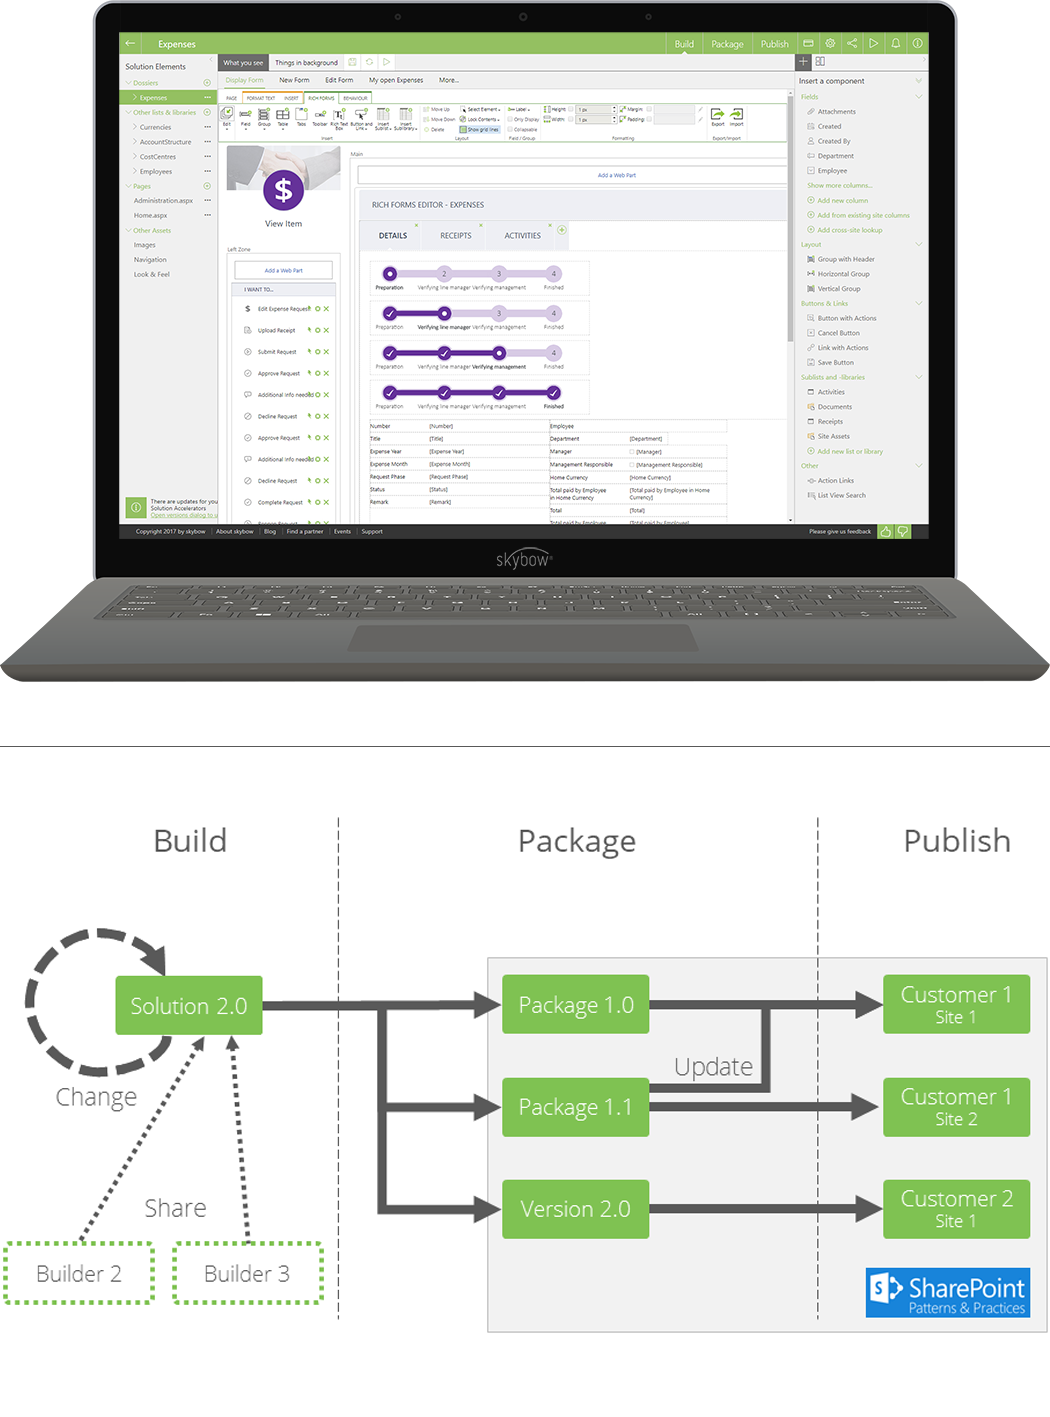 What's it like to build something with skybow Solution Studio?